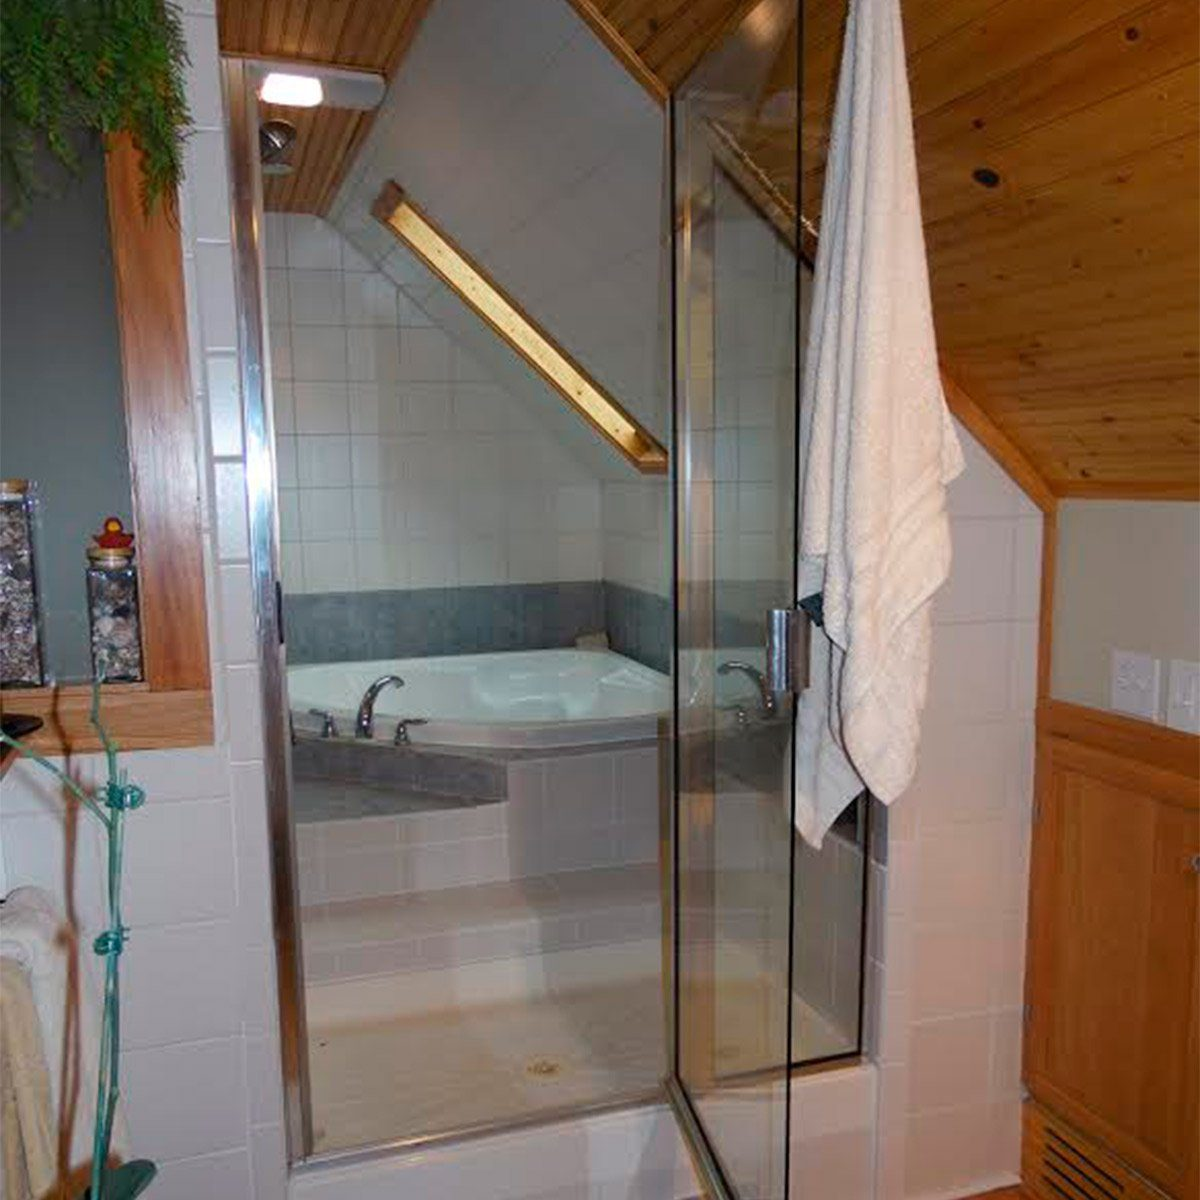 tub inside shower enclosure